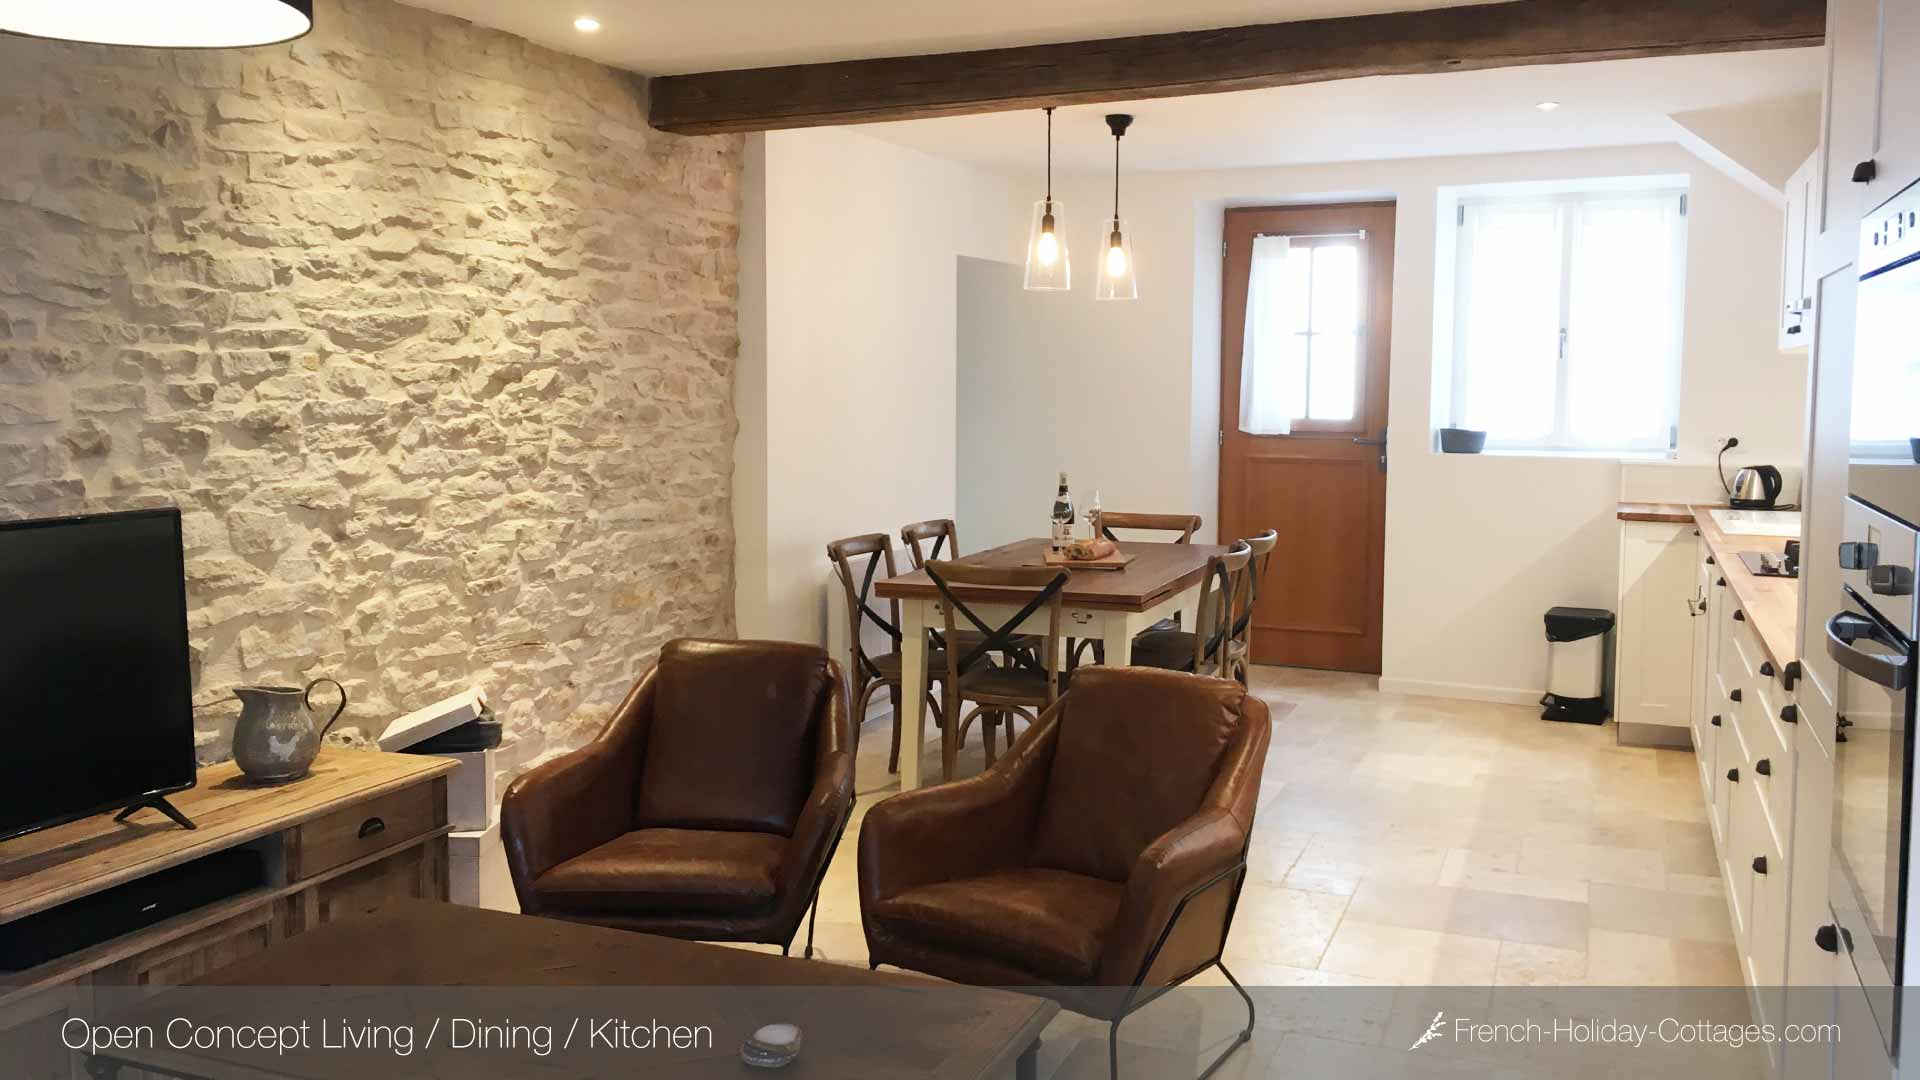 1.1-french-holiday-cottage-meursault-open-concept - french-holiday-cottages.com